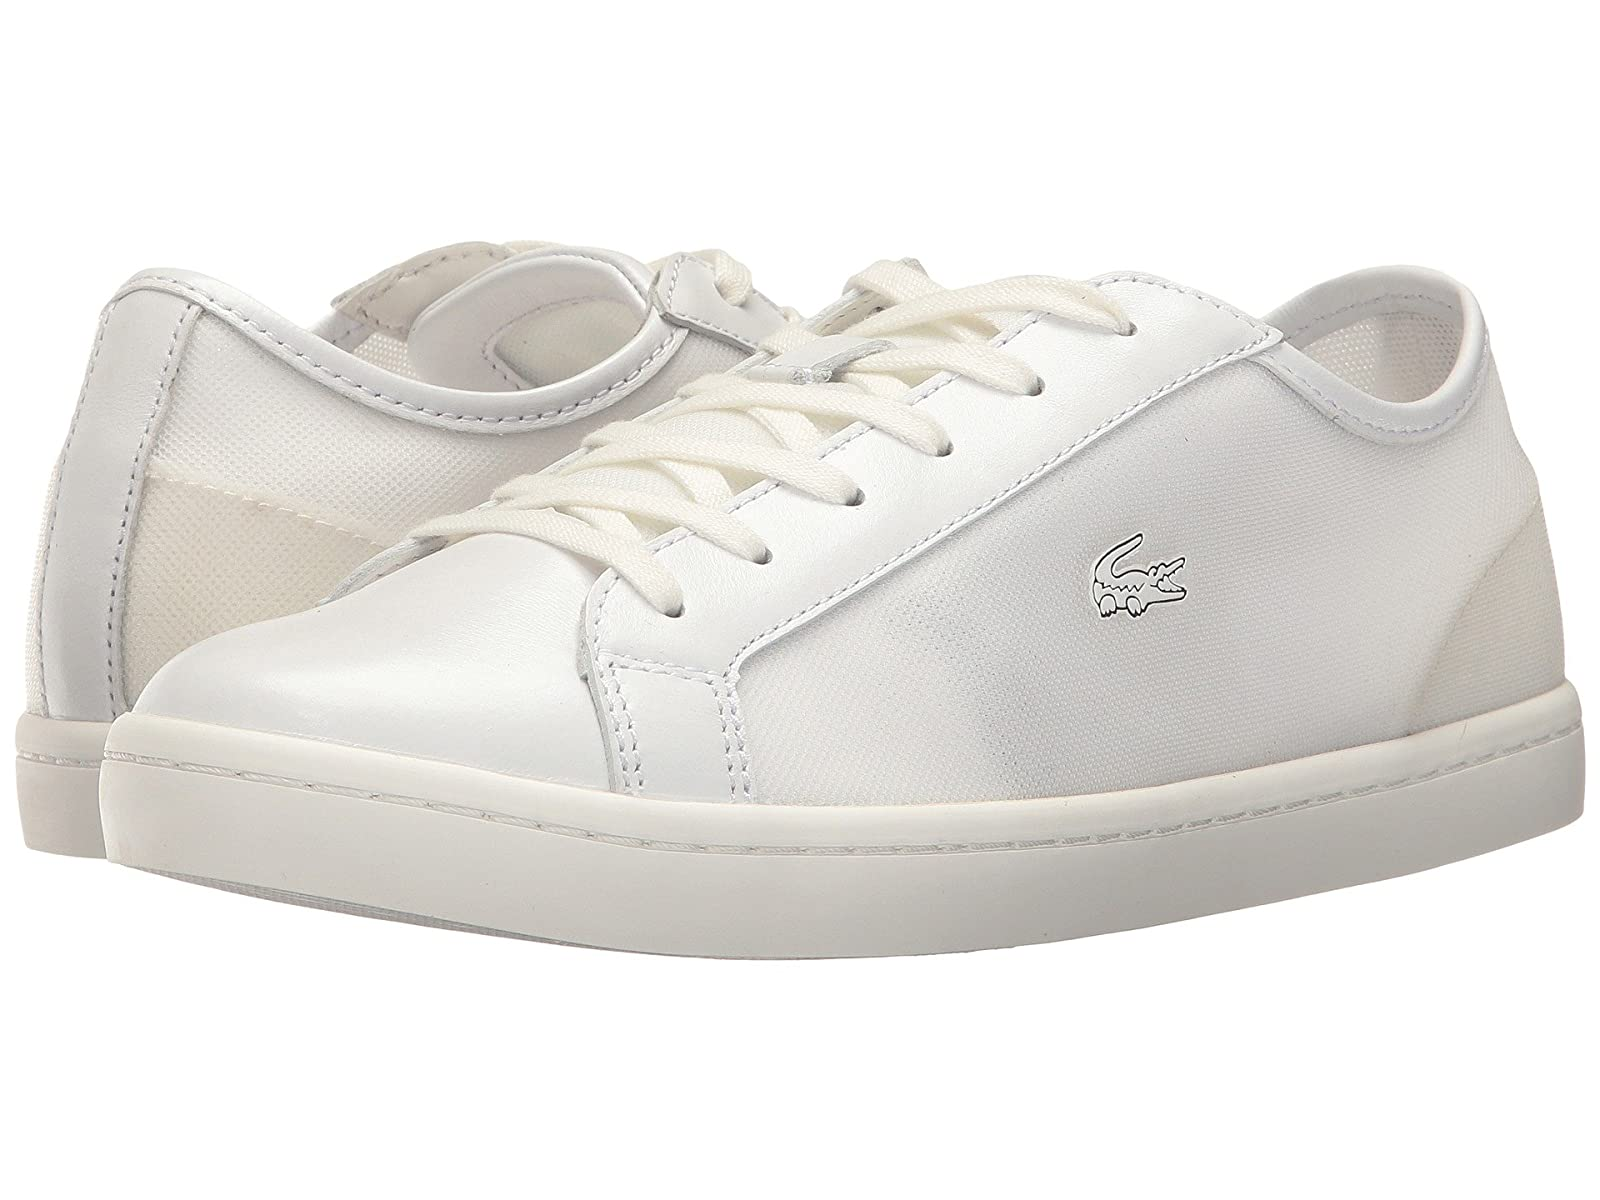 Lacoste Straightset 217 1Cheap and distinctive eye-catching shoes